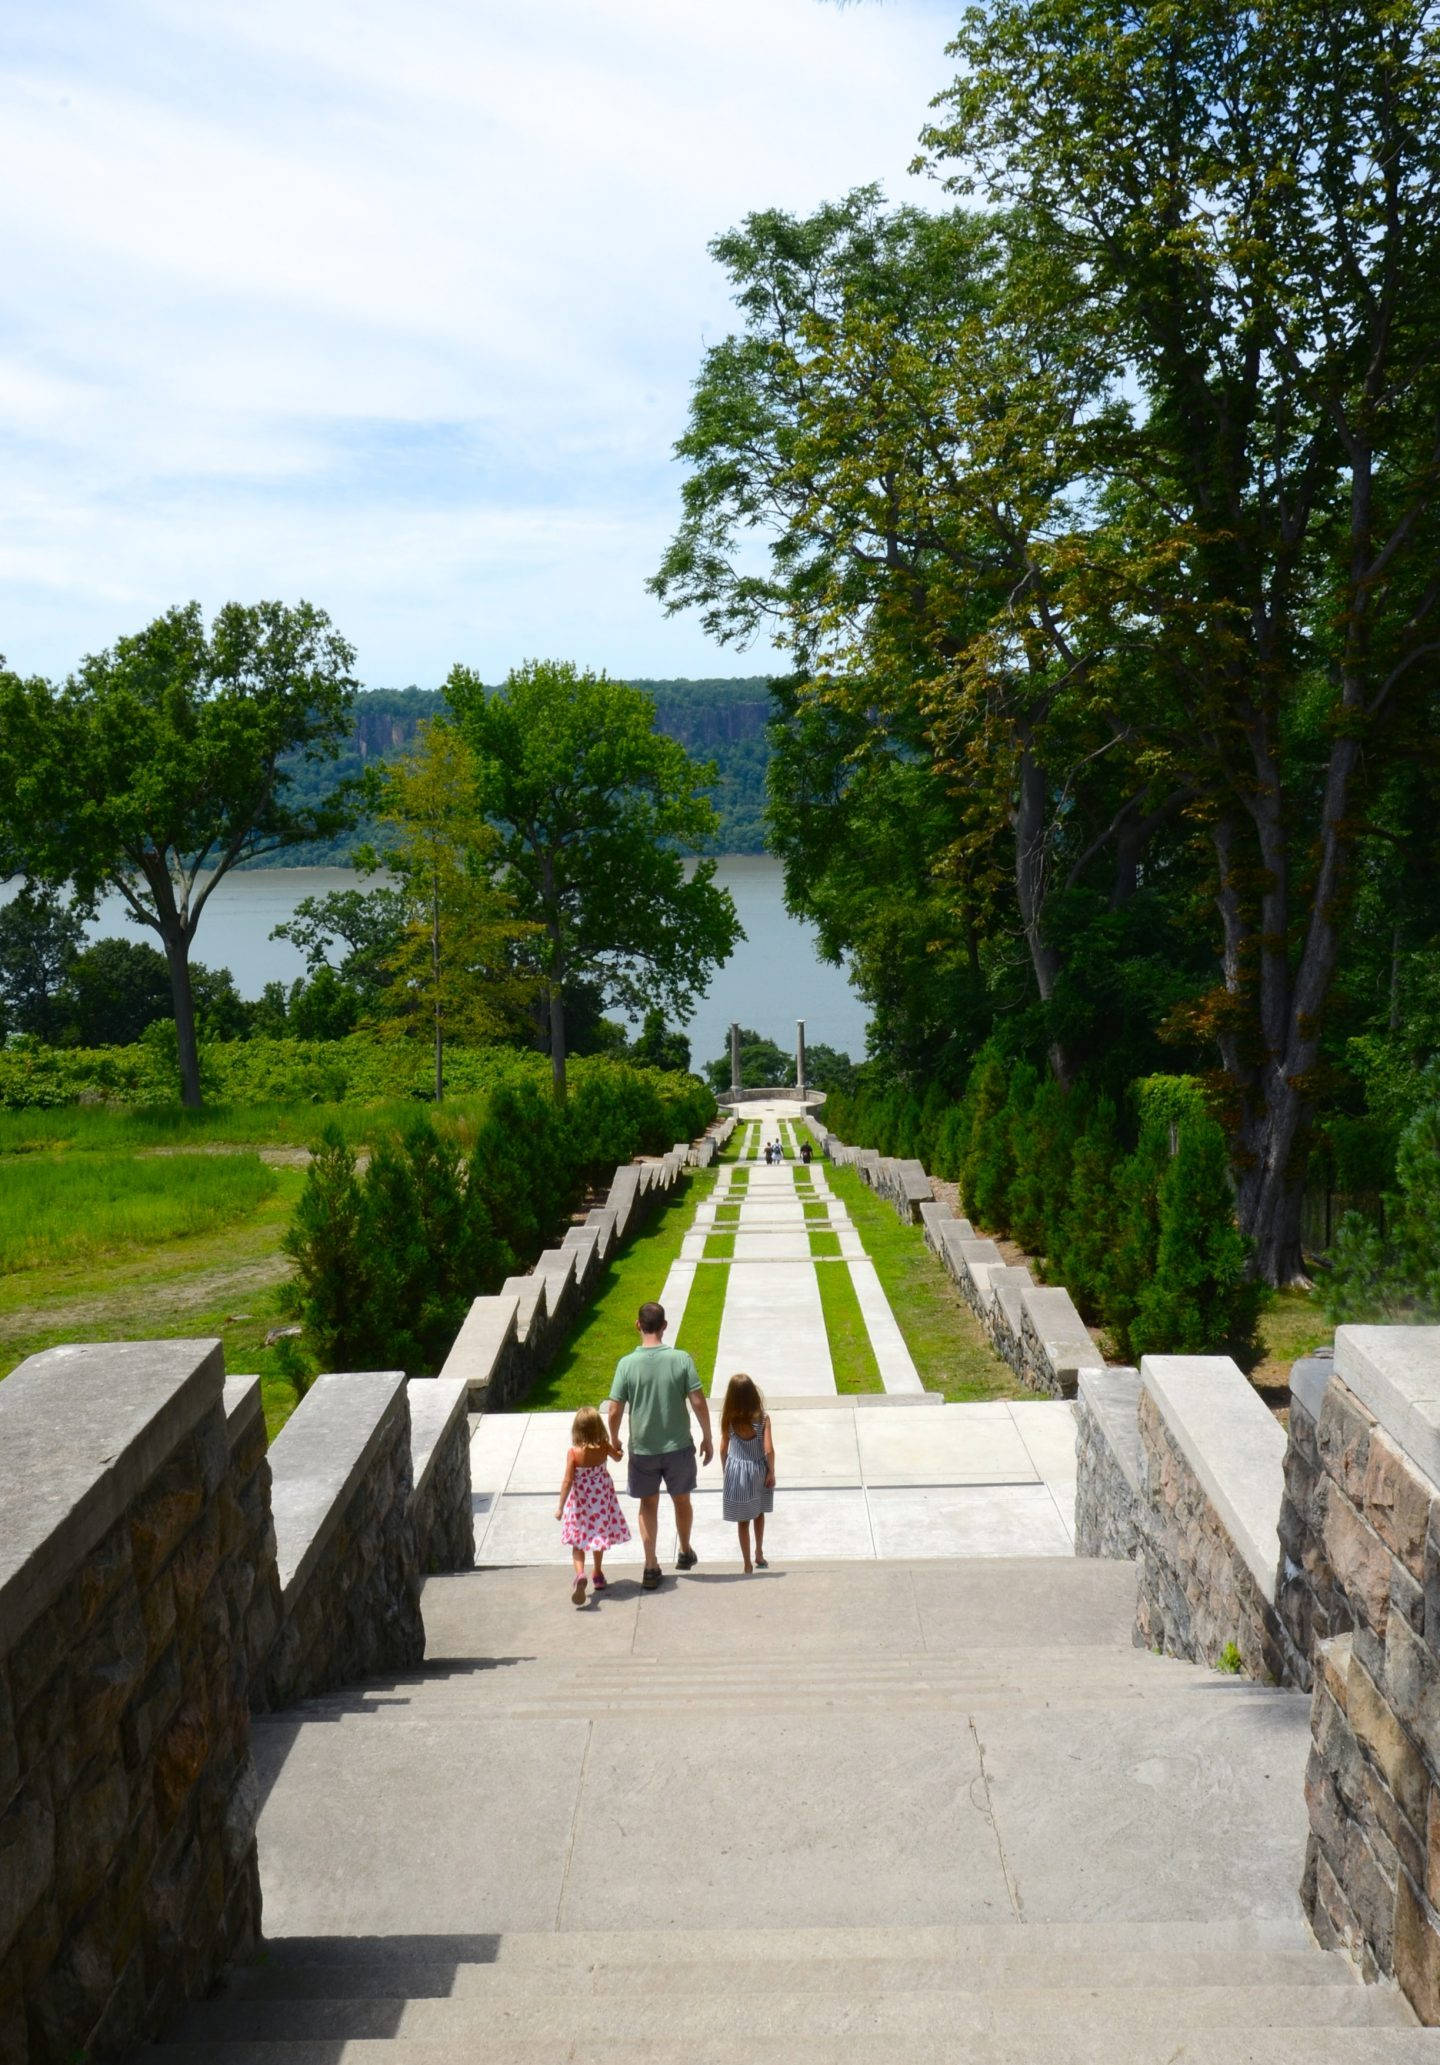 Walking down the grand staircase to the Hudson River at Untermyer Park and Gardens in Yonkers New York.